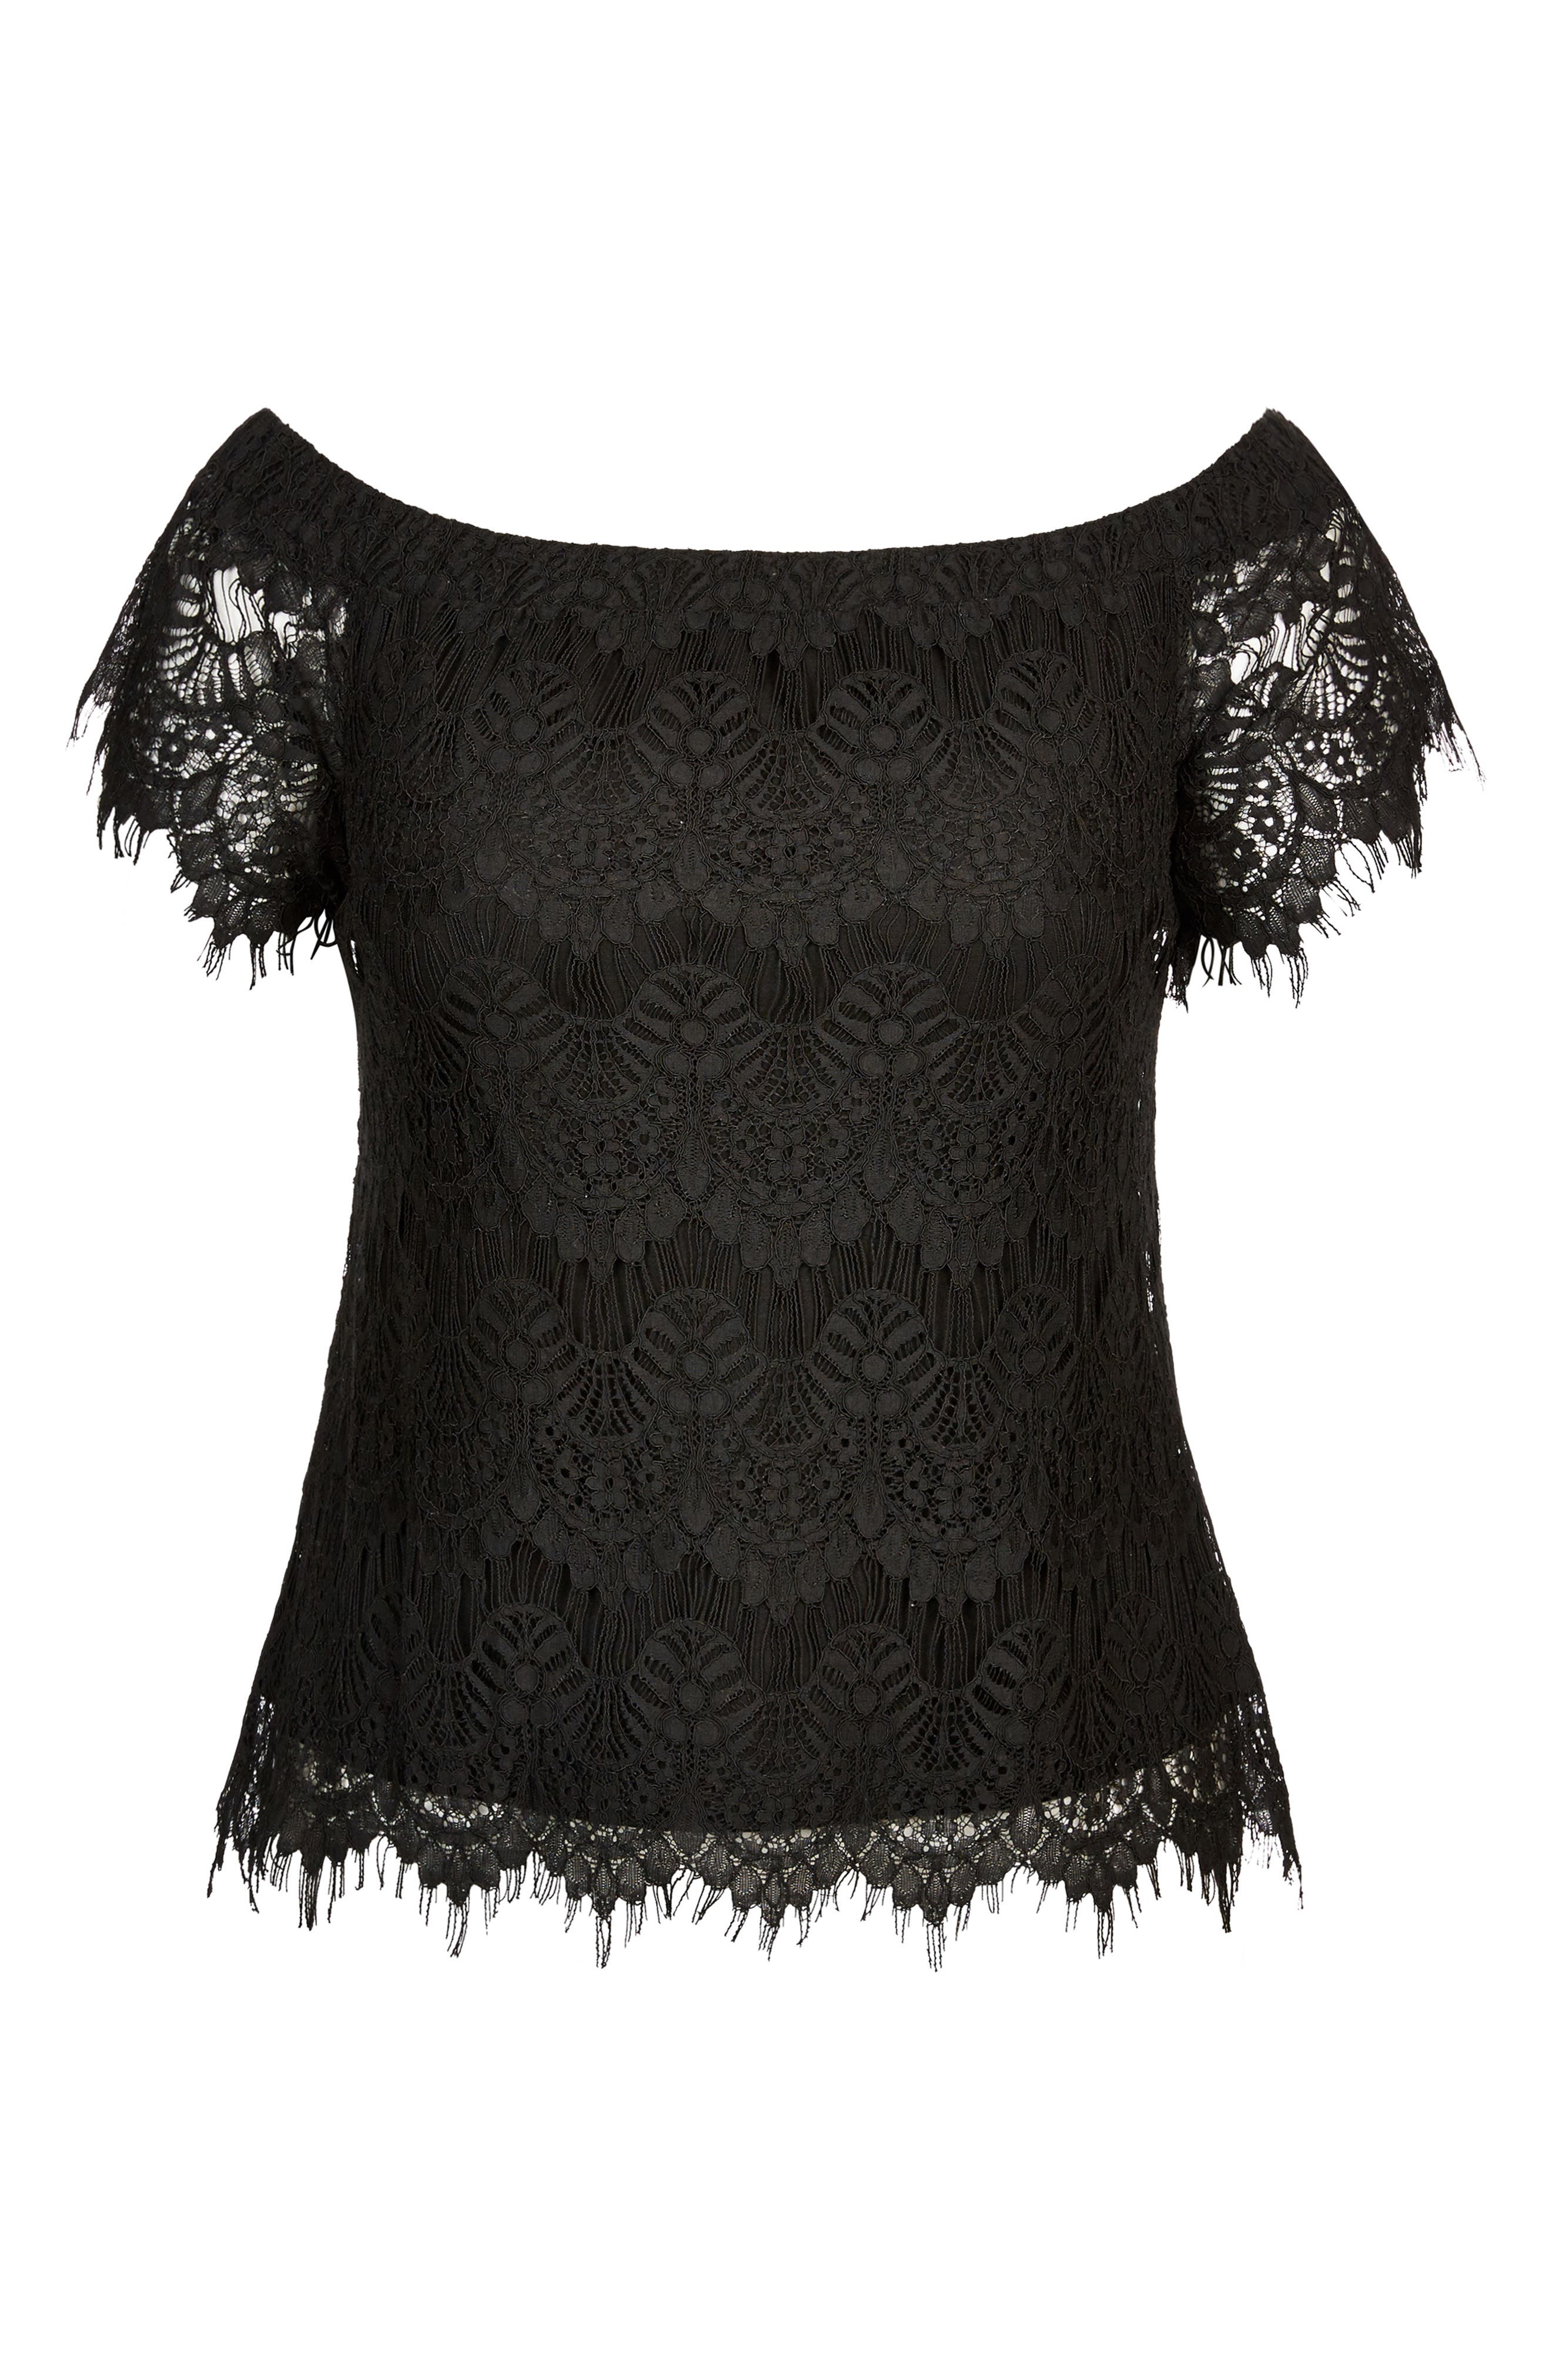 CITY CHIC,                             Lacy Off the Shoulder Top,                             Alternate thumbnail 3, color,                             001